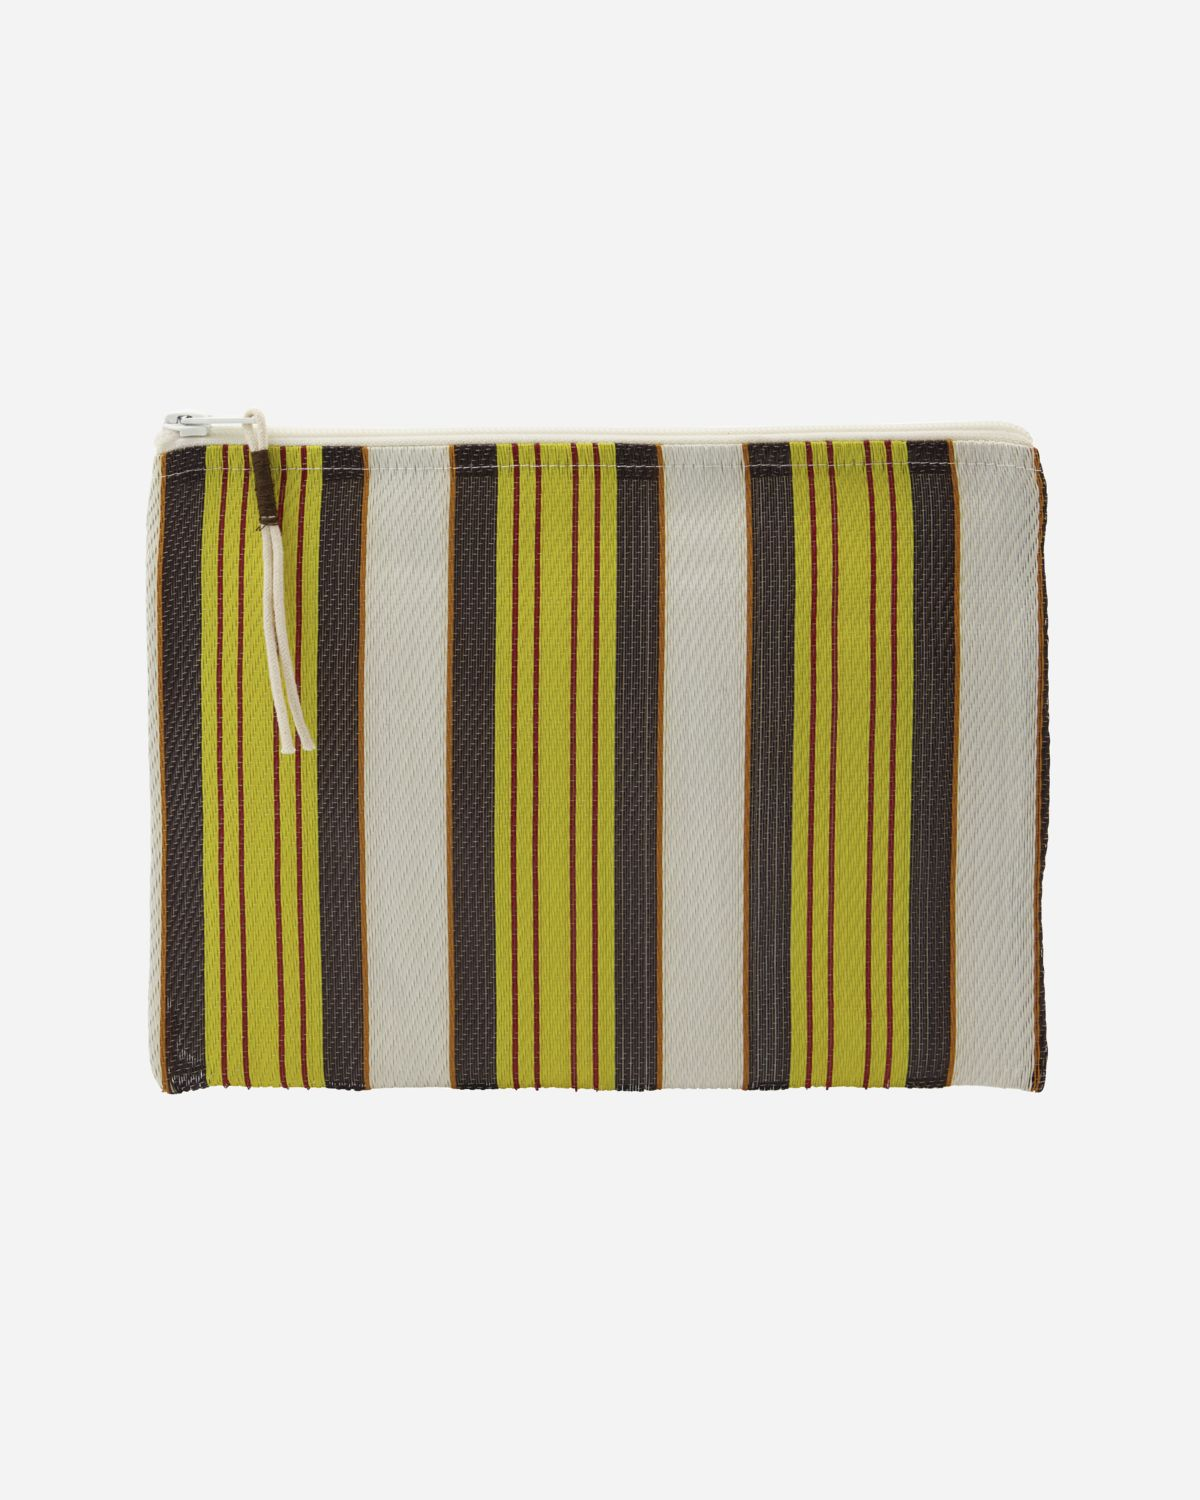 Pouch, Recy, Yellow/Brown, Colour may vary